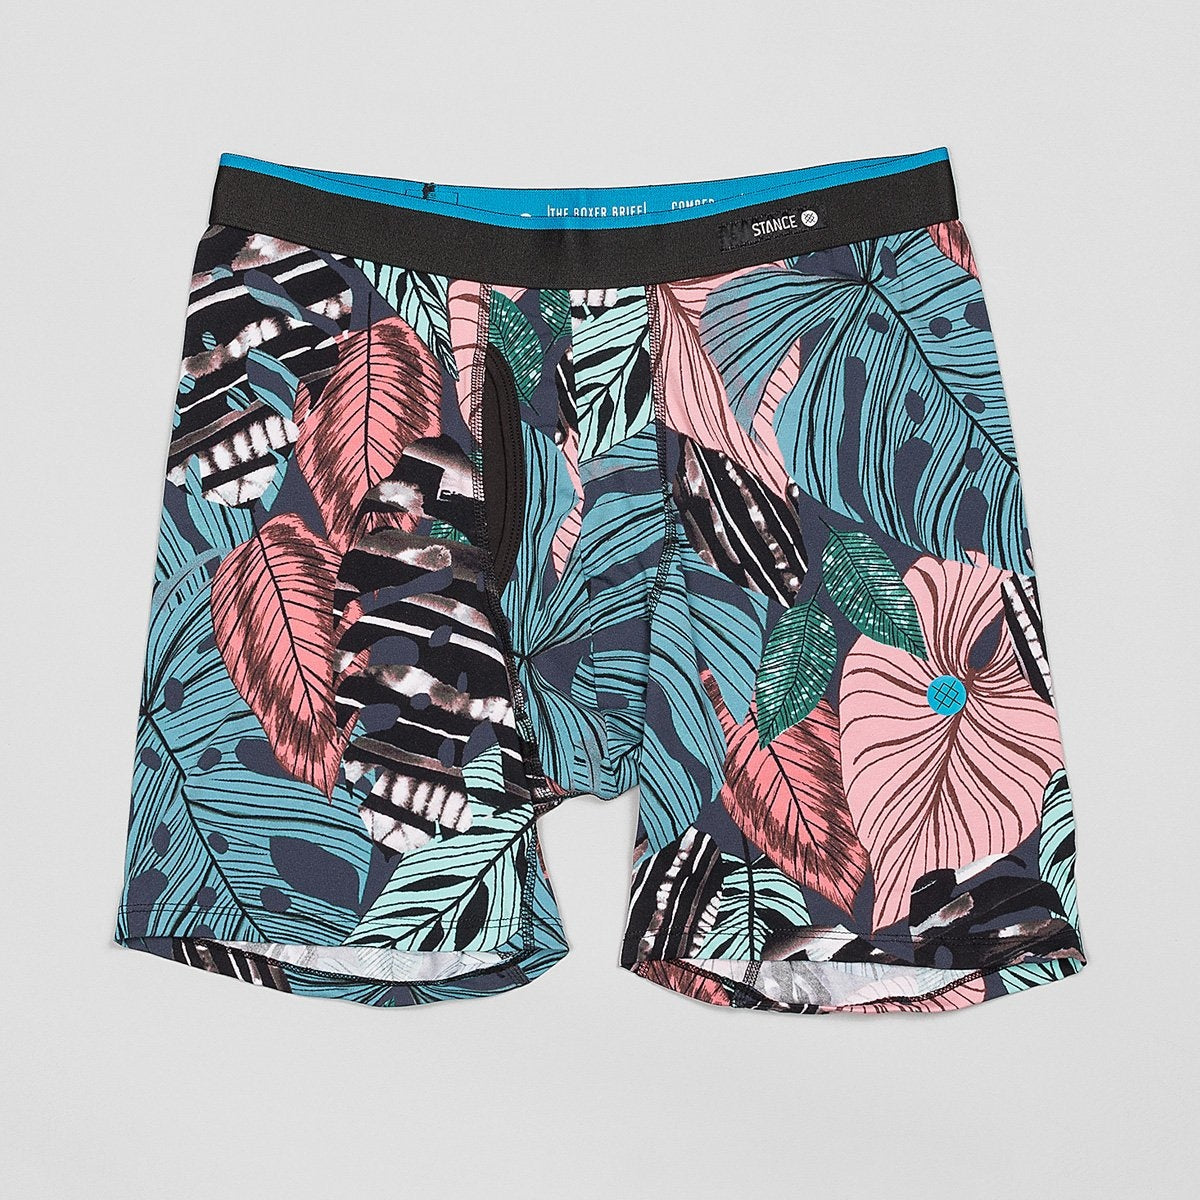 Stance Just Leave Boxer Brief Multi - Clothing